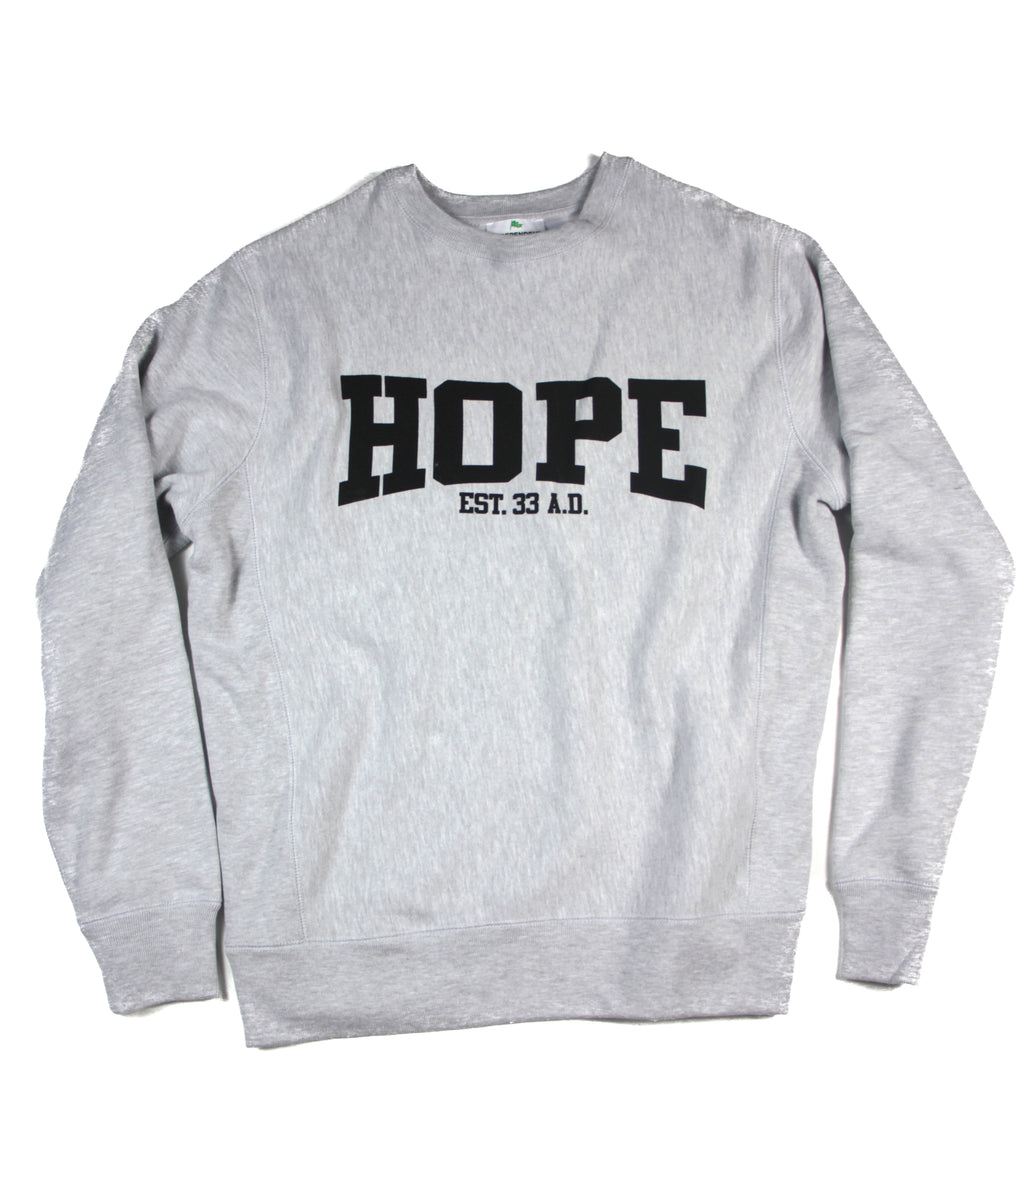 HOPE EST. AD33 GRAY PULLOVER